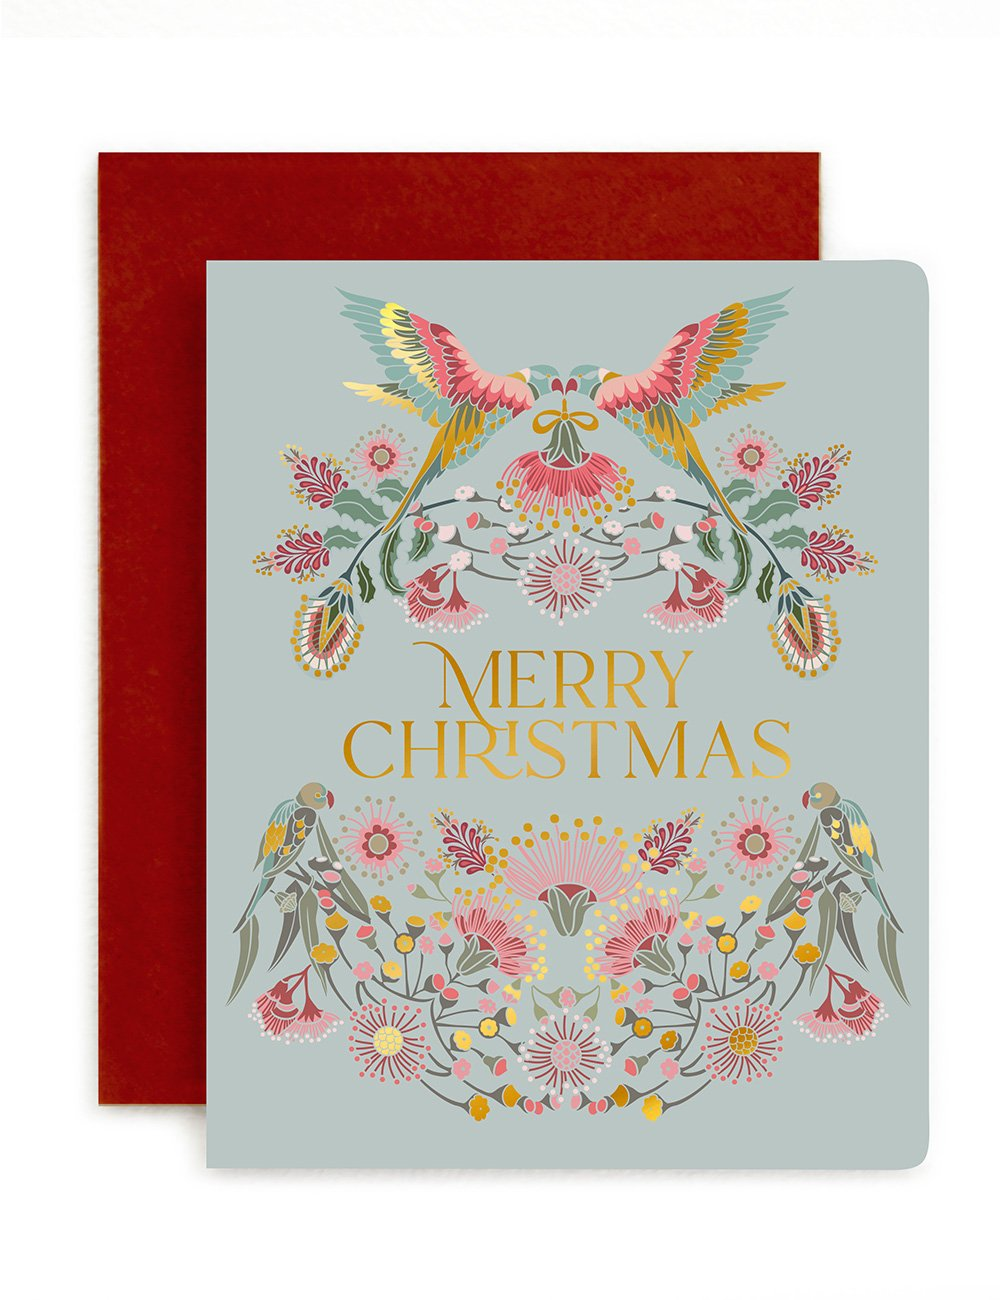 'Merry Christmas' Card